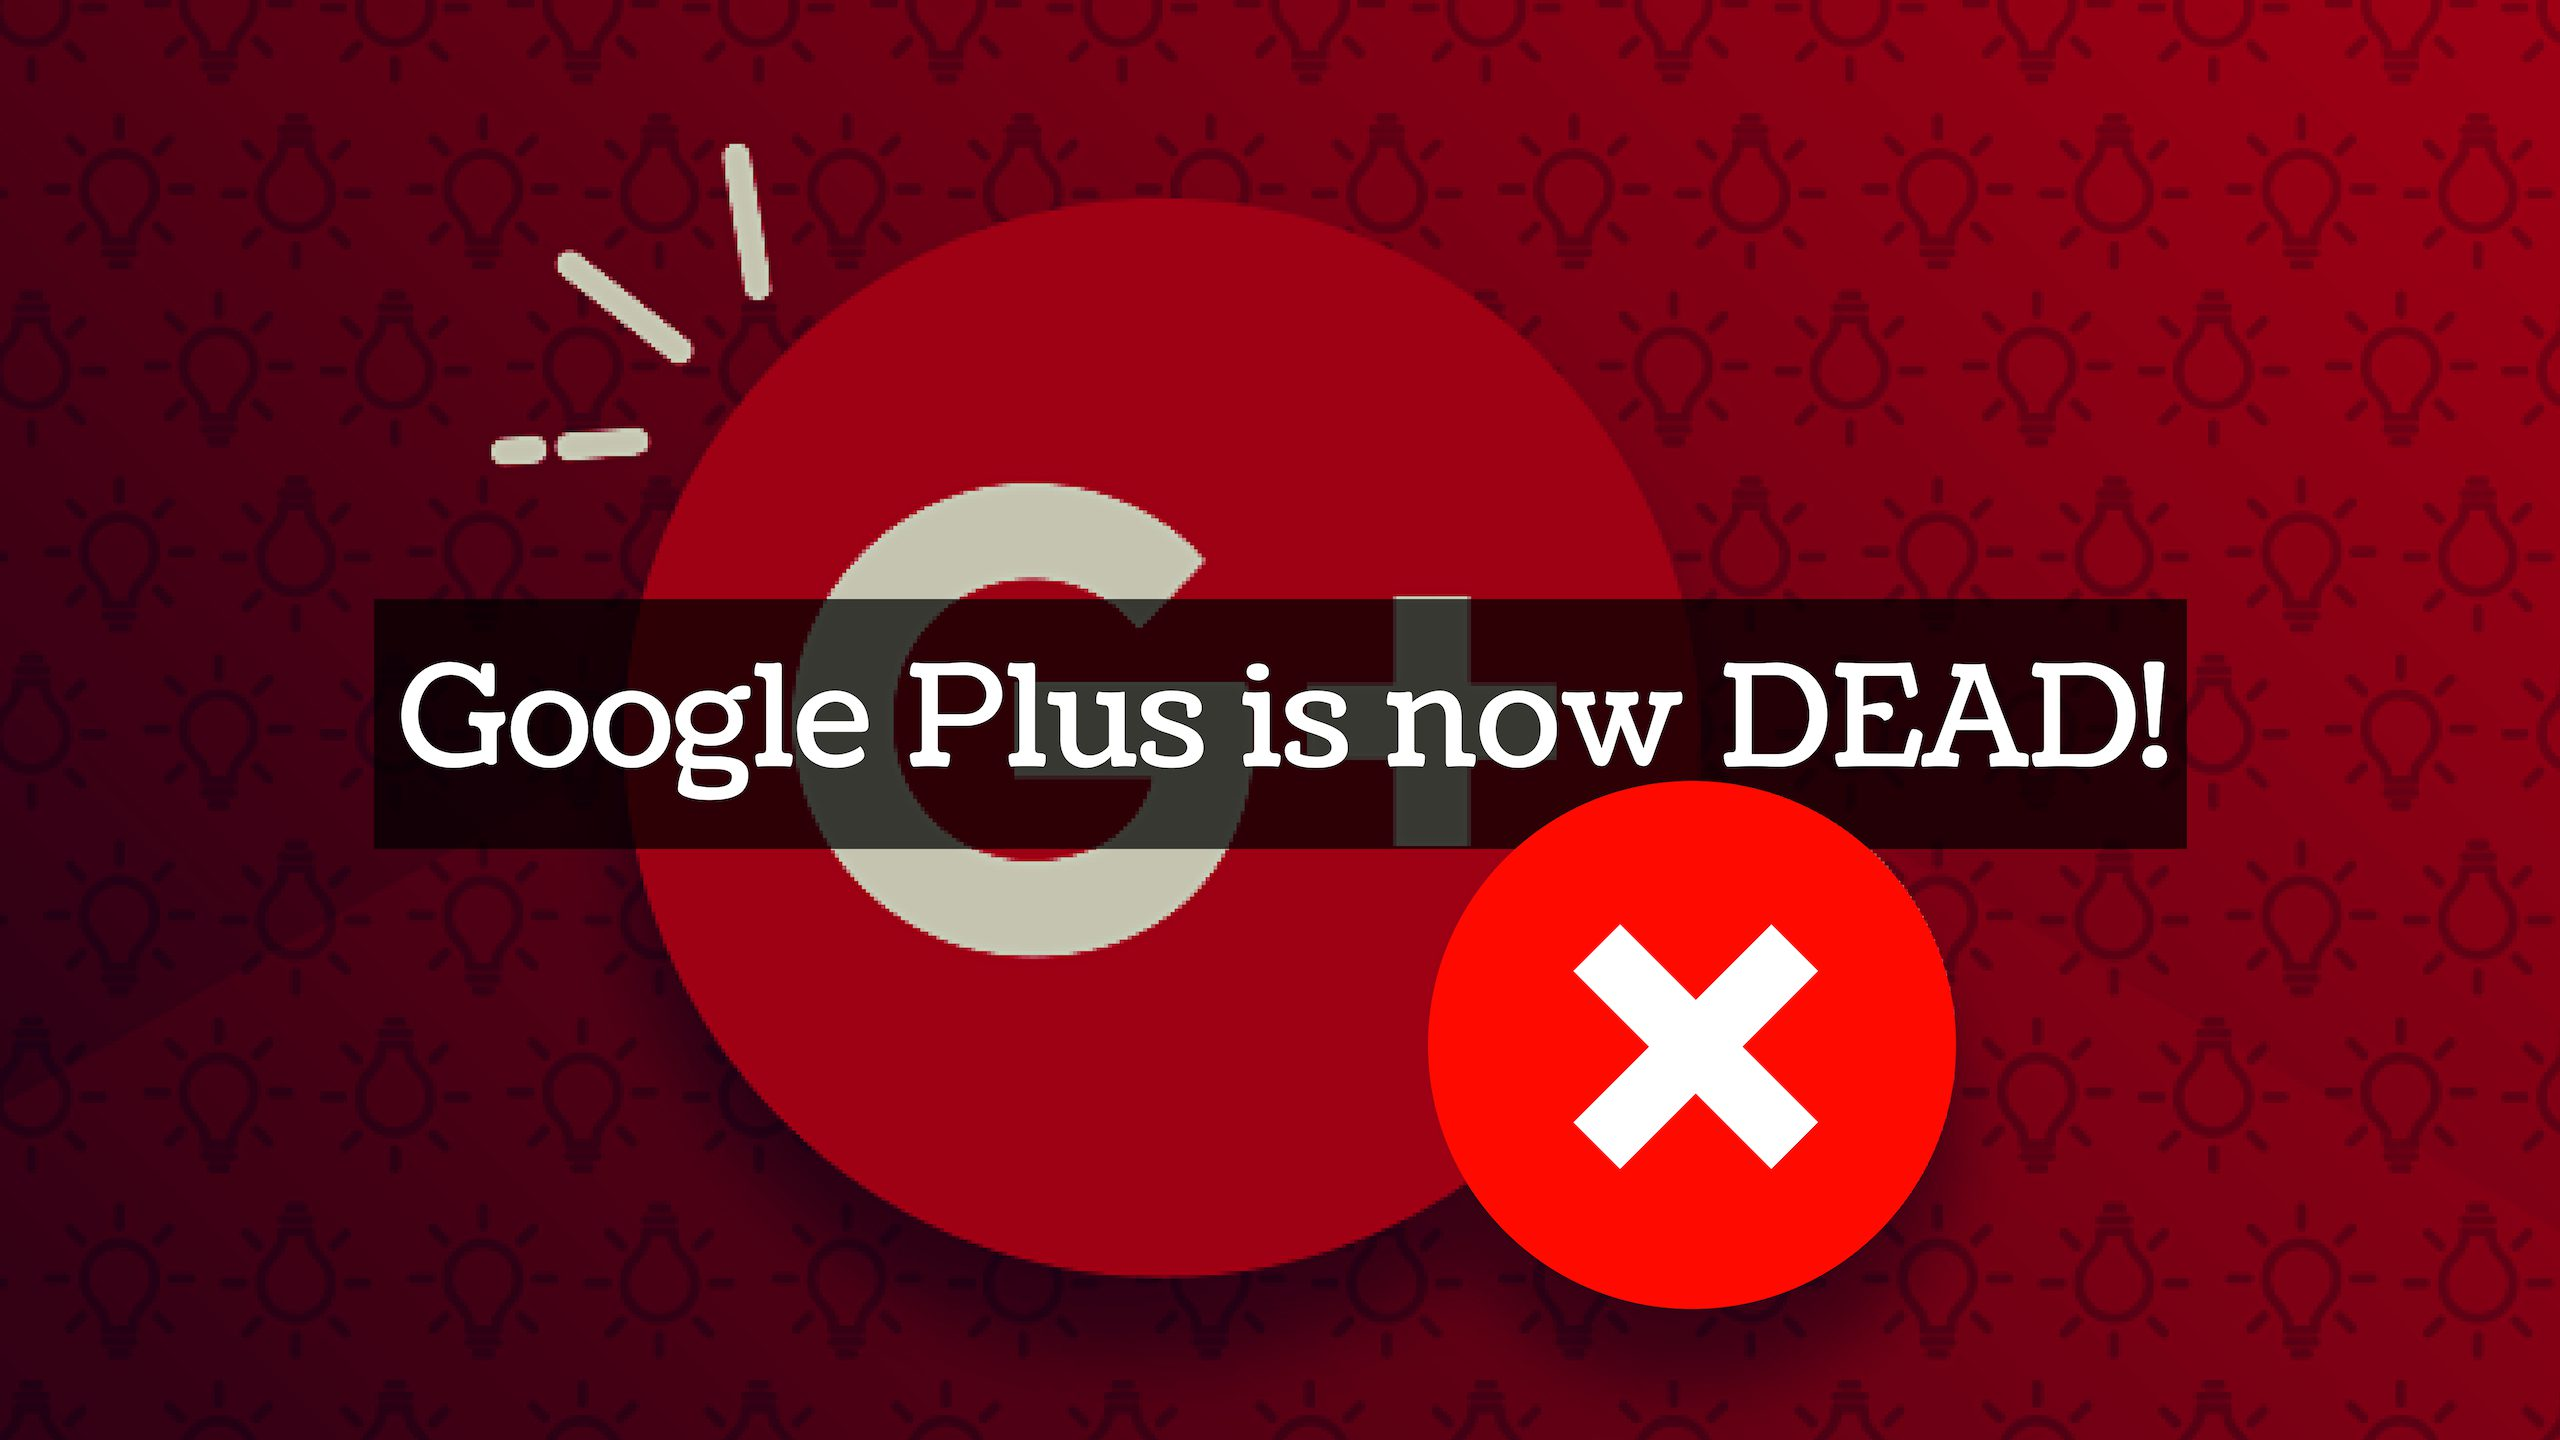 Google Plus is Dead, Personal Data of over Half-a-million Users Leaked!